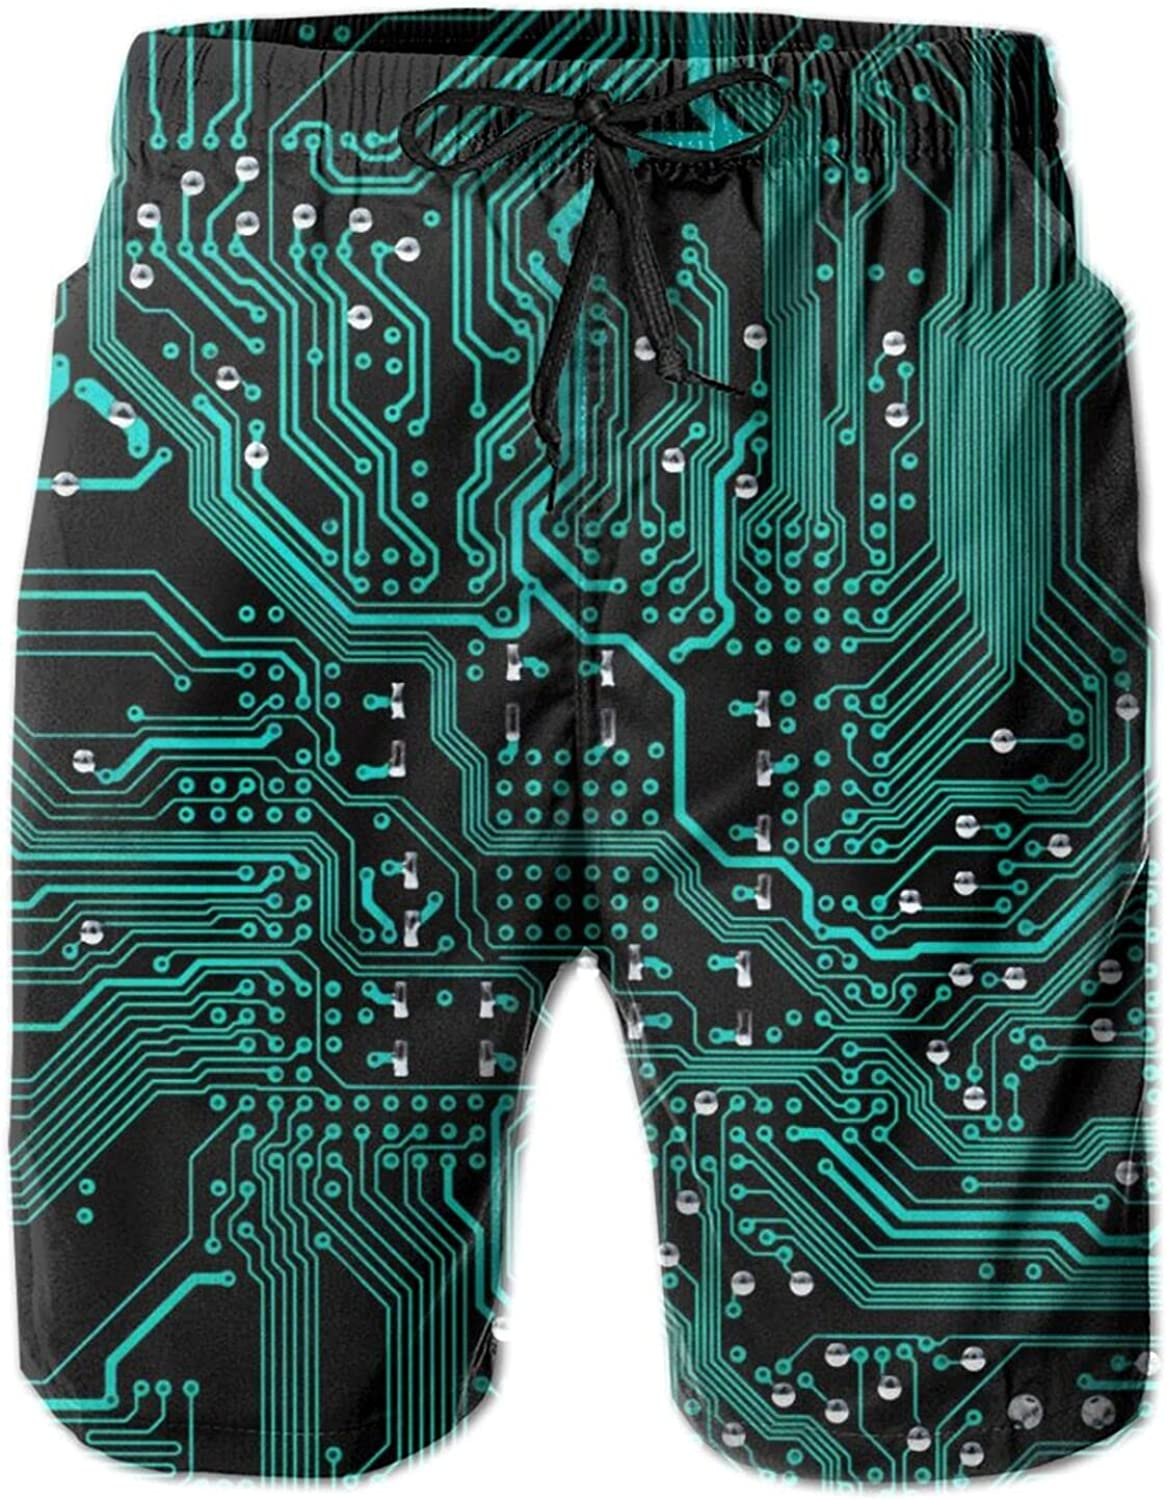 Nerd Close View of The Main Computer Circuit Board Men's Elastic Beach Shorts Lightweight Breathable Casual Mesh Lining Swimsuit Shorts with Pockets M-XXL